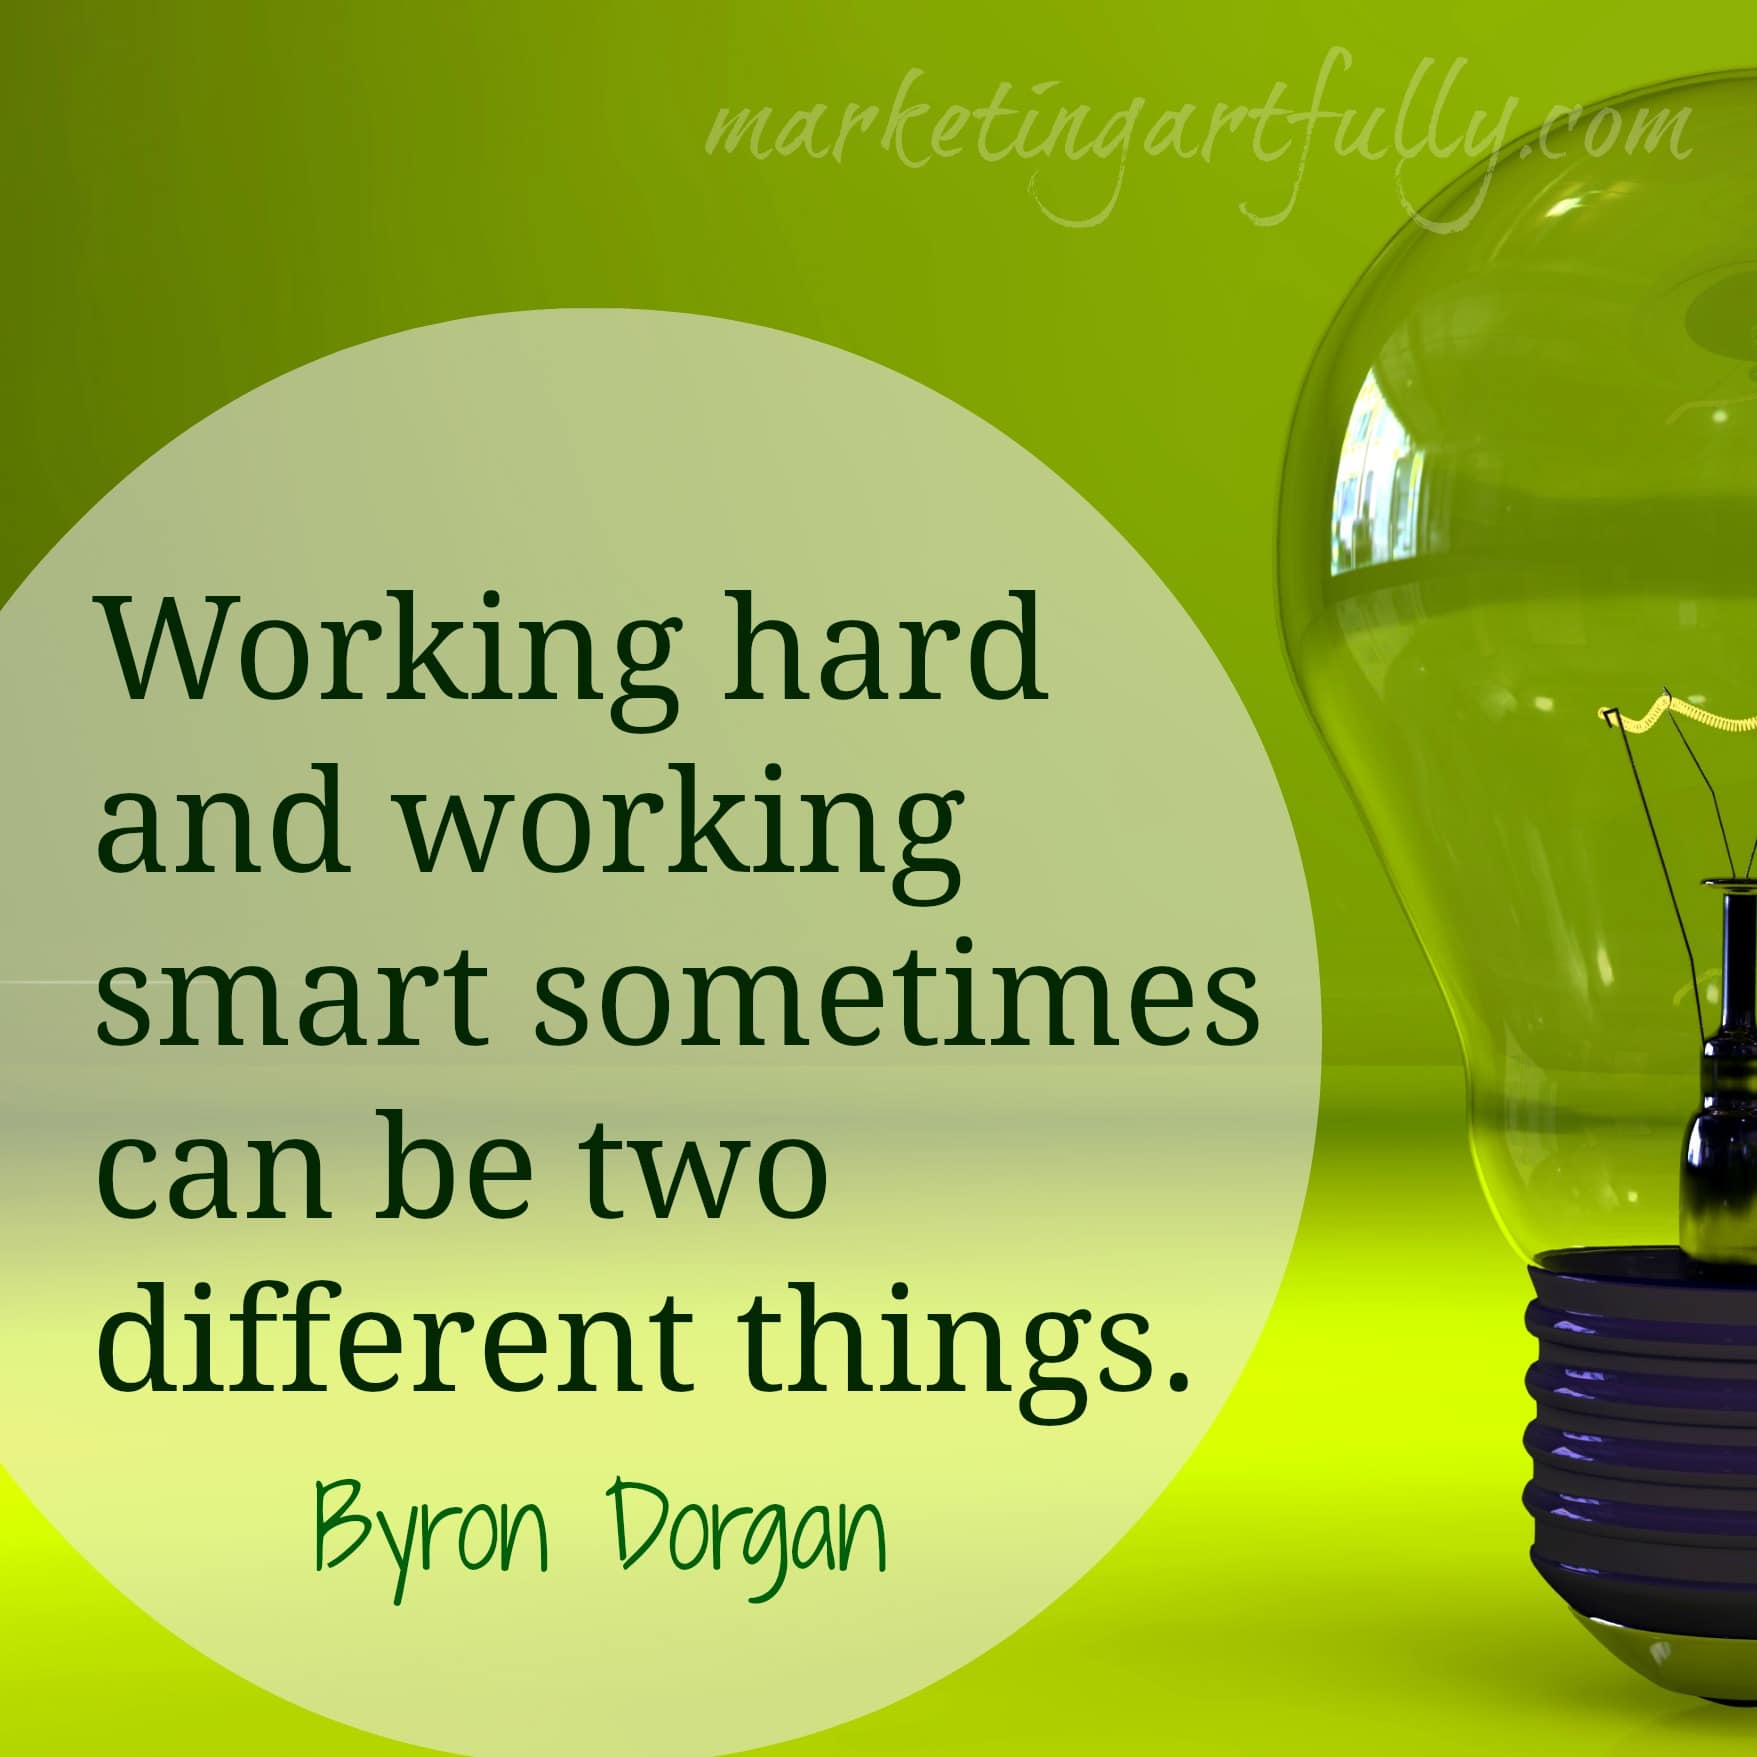 Working hard and working smart sometimes can be two different things. Byron Dorgan